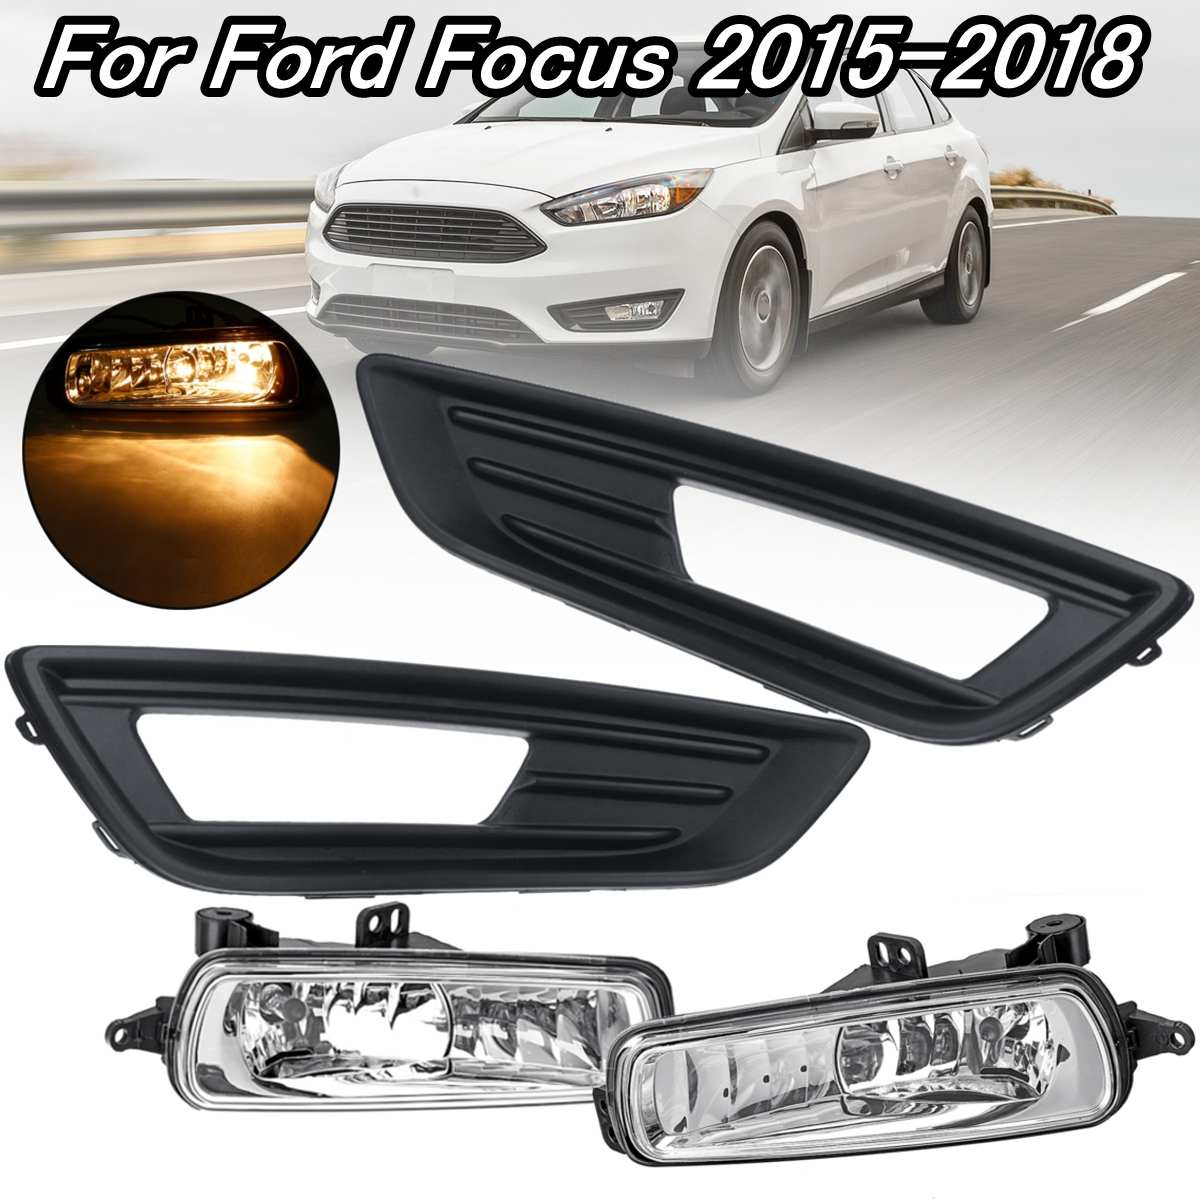 standard Clear front side Light// parking Bulbs X2. Ford Ka MK1 1996 to 2008